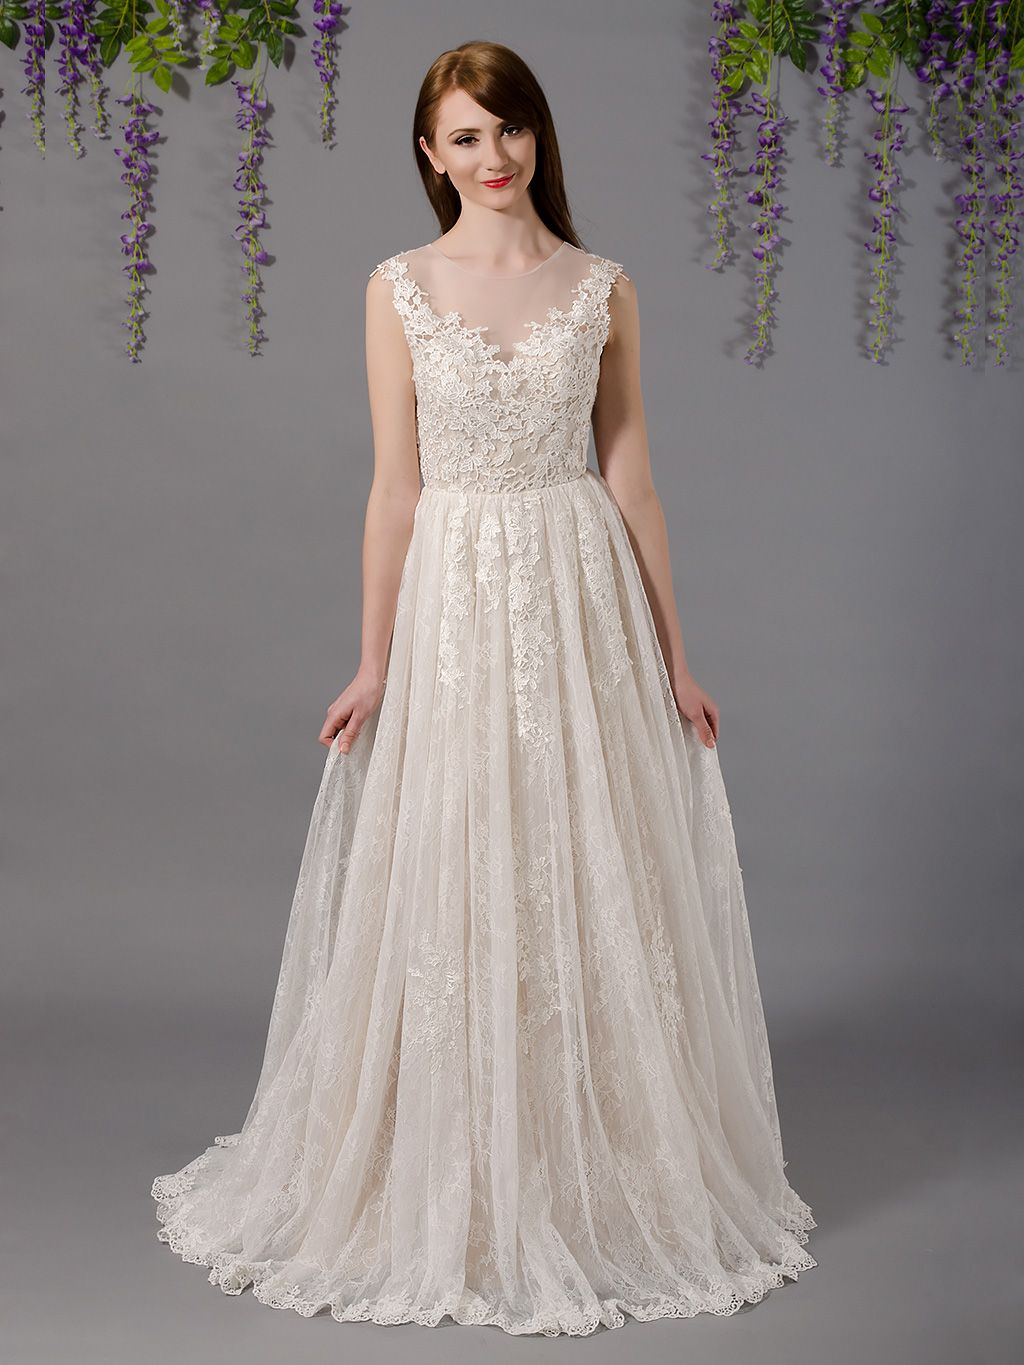 b543bece3d Sleeveless lace wedding dress with tulle skirts 4037